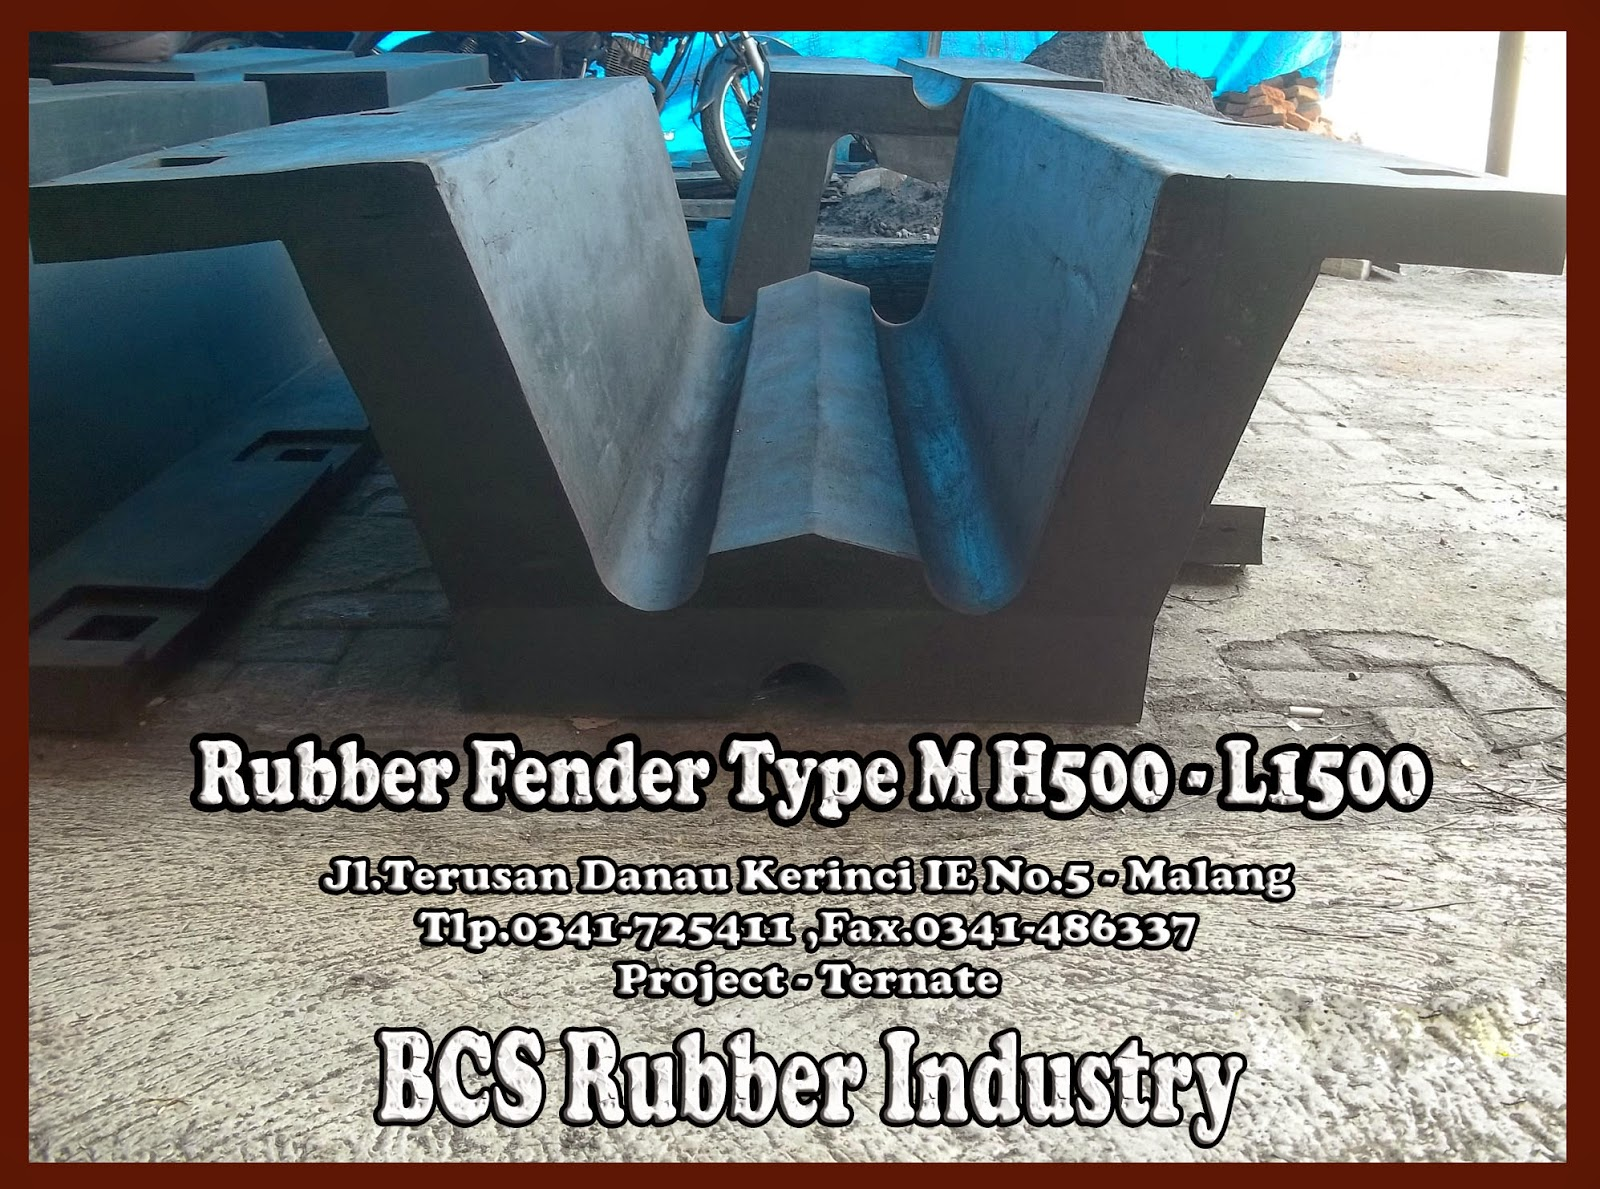 Rubber Fender M – BCS Rubber Production,Rubber Fender,Rubber Fender M